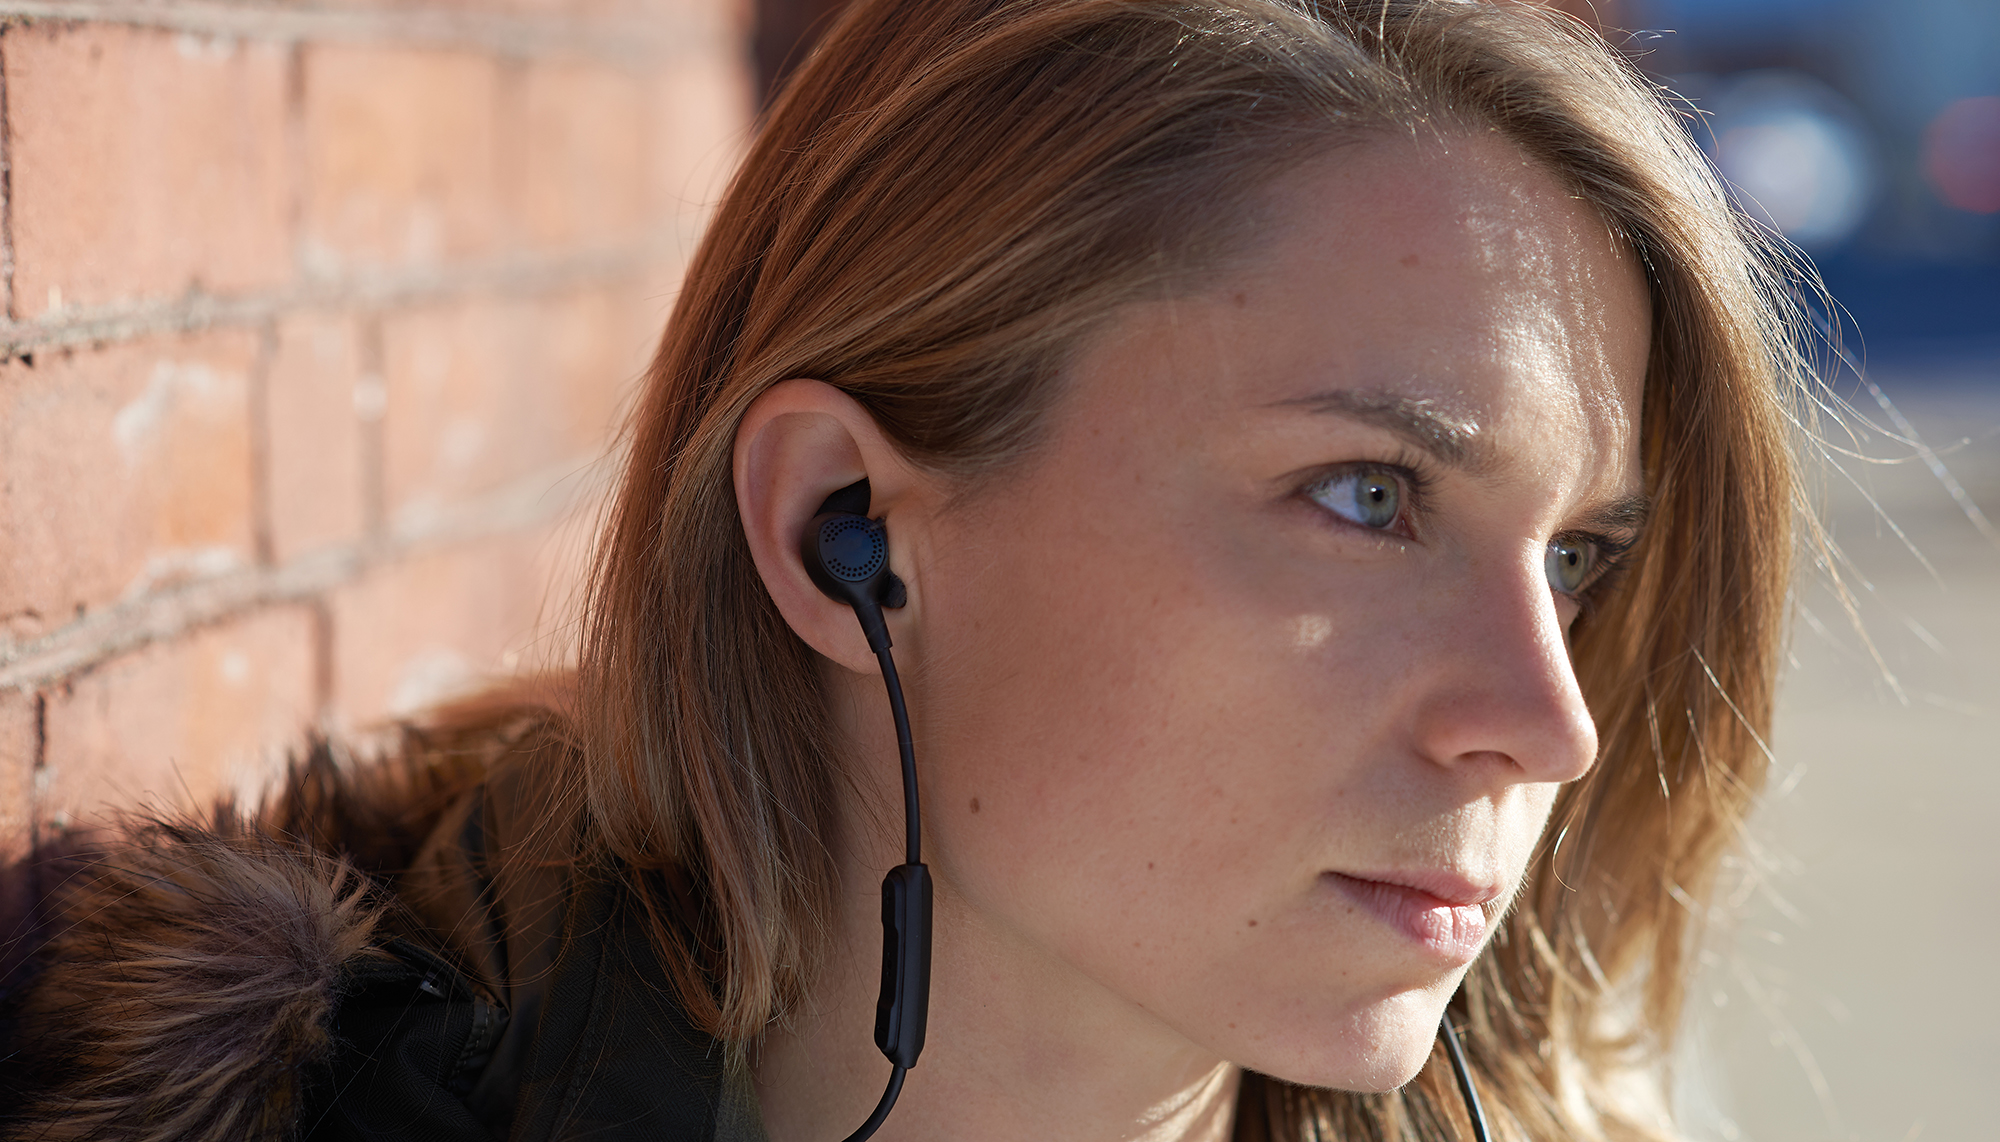 A woman wears earbuds, produced with 3D printing, custom-fit to her inner ear.